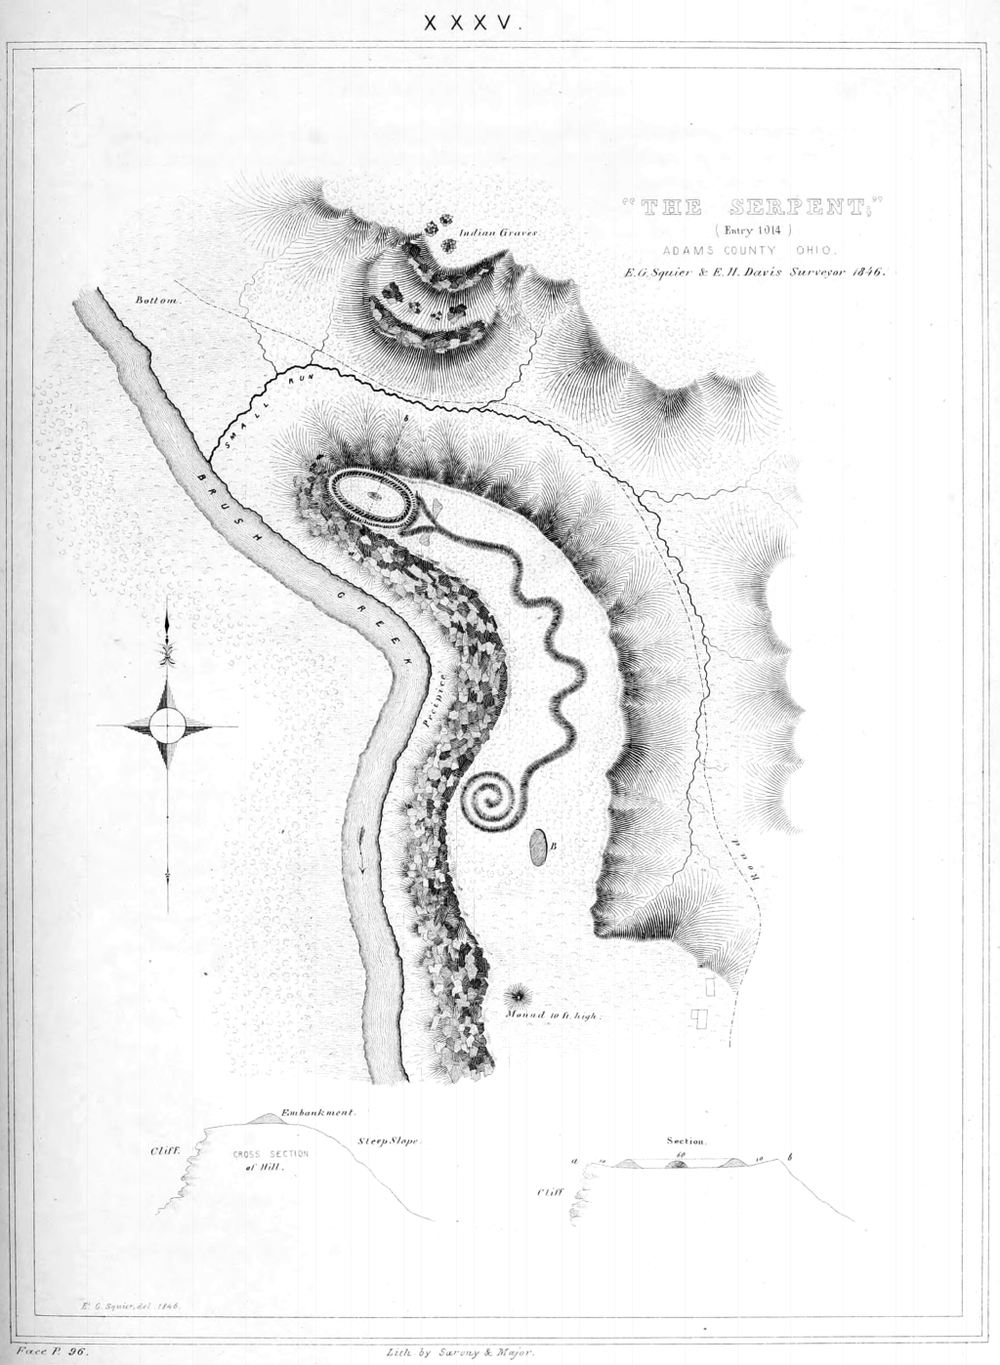 Great Serpent in Adams County, Ohio, Plate XXXV from Ancient Monuments of the Mississippi Valley, 1848. Image Source:  SD35 Serpent Mound Squier and Davis Plate XXXV gray-levels-cropped.png (derived from Ancient Monuments of the Mississippi Valley, published by the Smithsonian Institution, 1848) by Ephraim George Squier and Edwin Hamilton Davis is licensed under Public Domain Mark 1.0